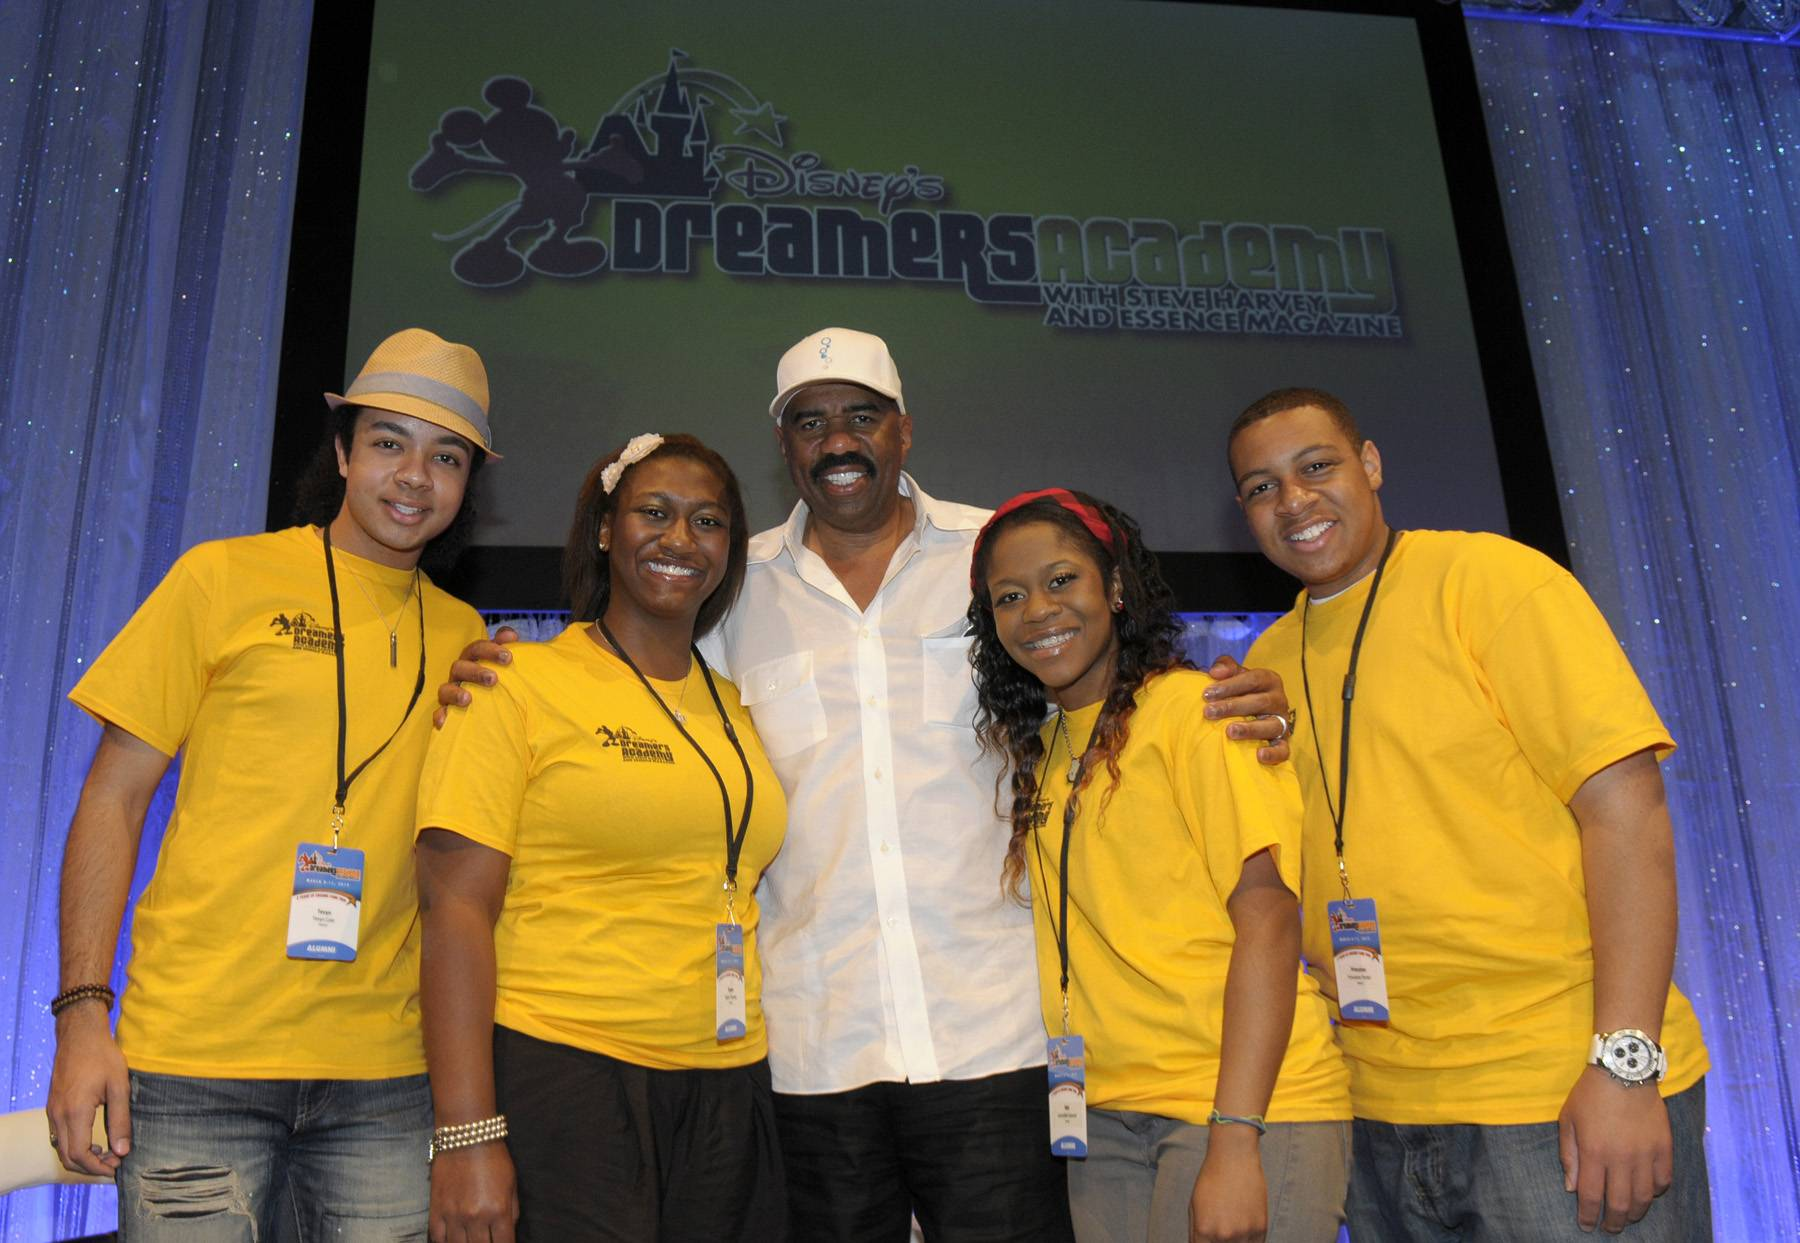 In Their Own Words - Steve Harvey,Selita EbanksandSean Kingstonwere among the bevy of stars on hand to celebrate the fifth annualDisney?s Dreamers Academyin Orlando, FL, March 8-11. Click on to see some of the words of wisdom they shared with the lucky high school students invited to attend the four-day conference, which focused on empowering young people to reach their goals.?Britt Middleton  (Photo: Phelan Ebenhack / Disney)